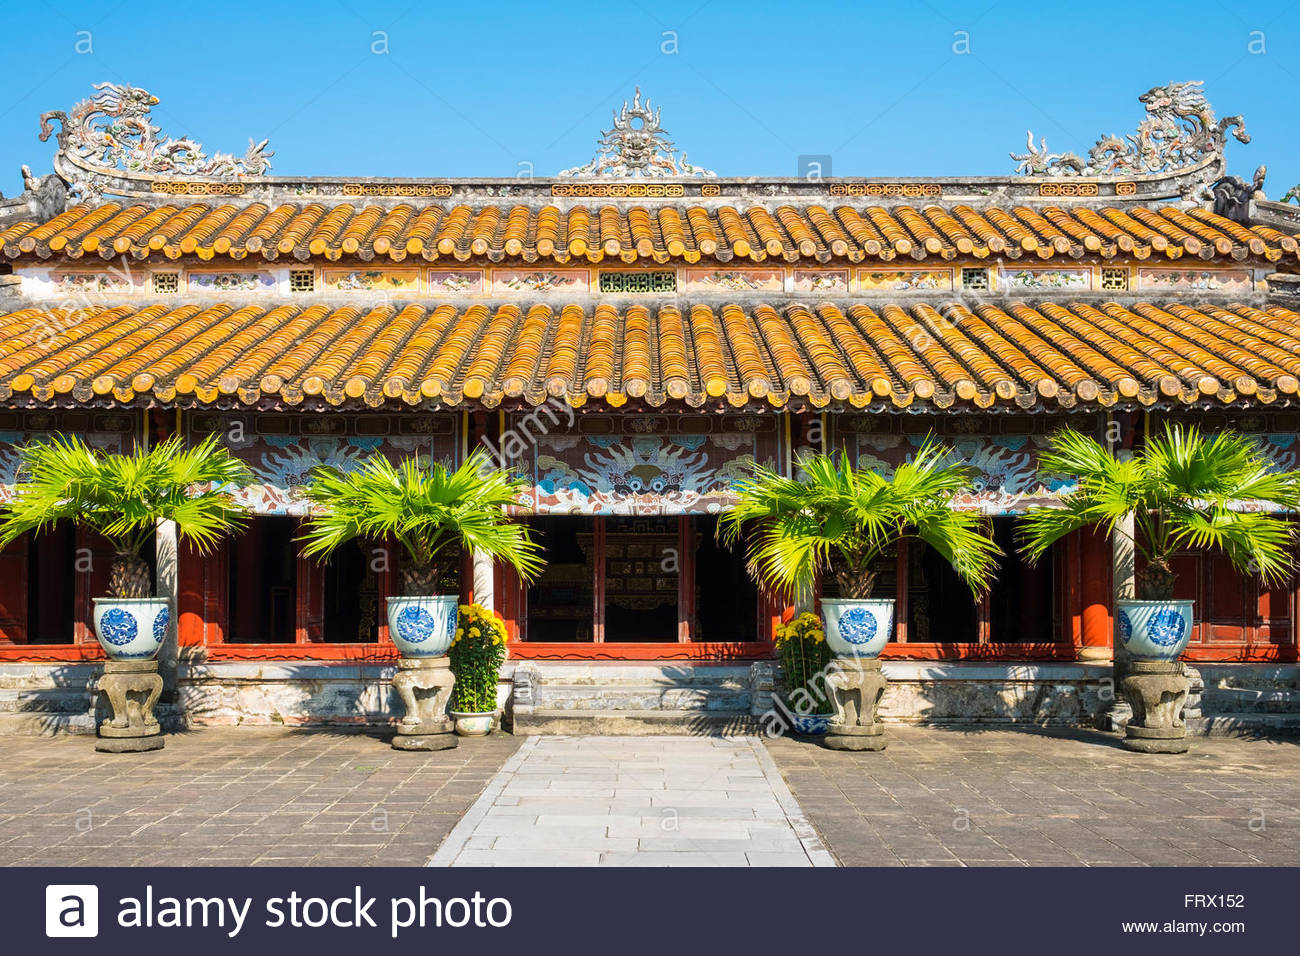 Hung Mieu Temple inside the To Mieu Temple Complex, Imperial City of Hue, Thua Thien-Hue Province, Vietnam - Stock Image